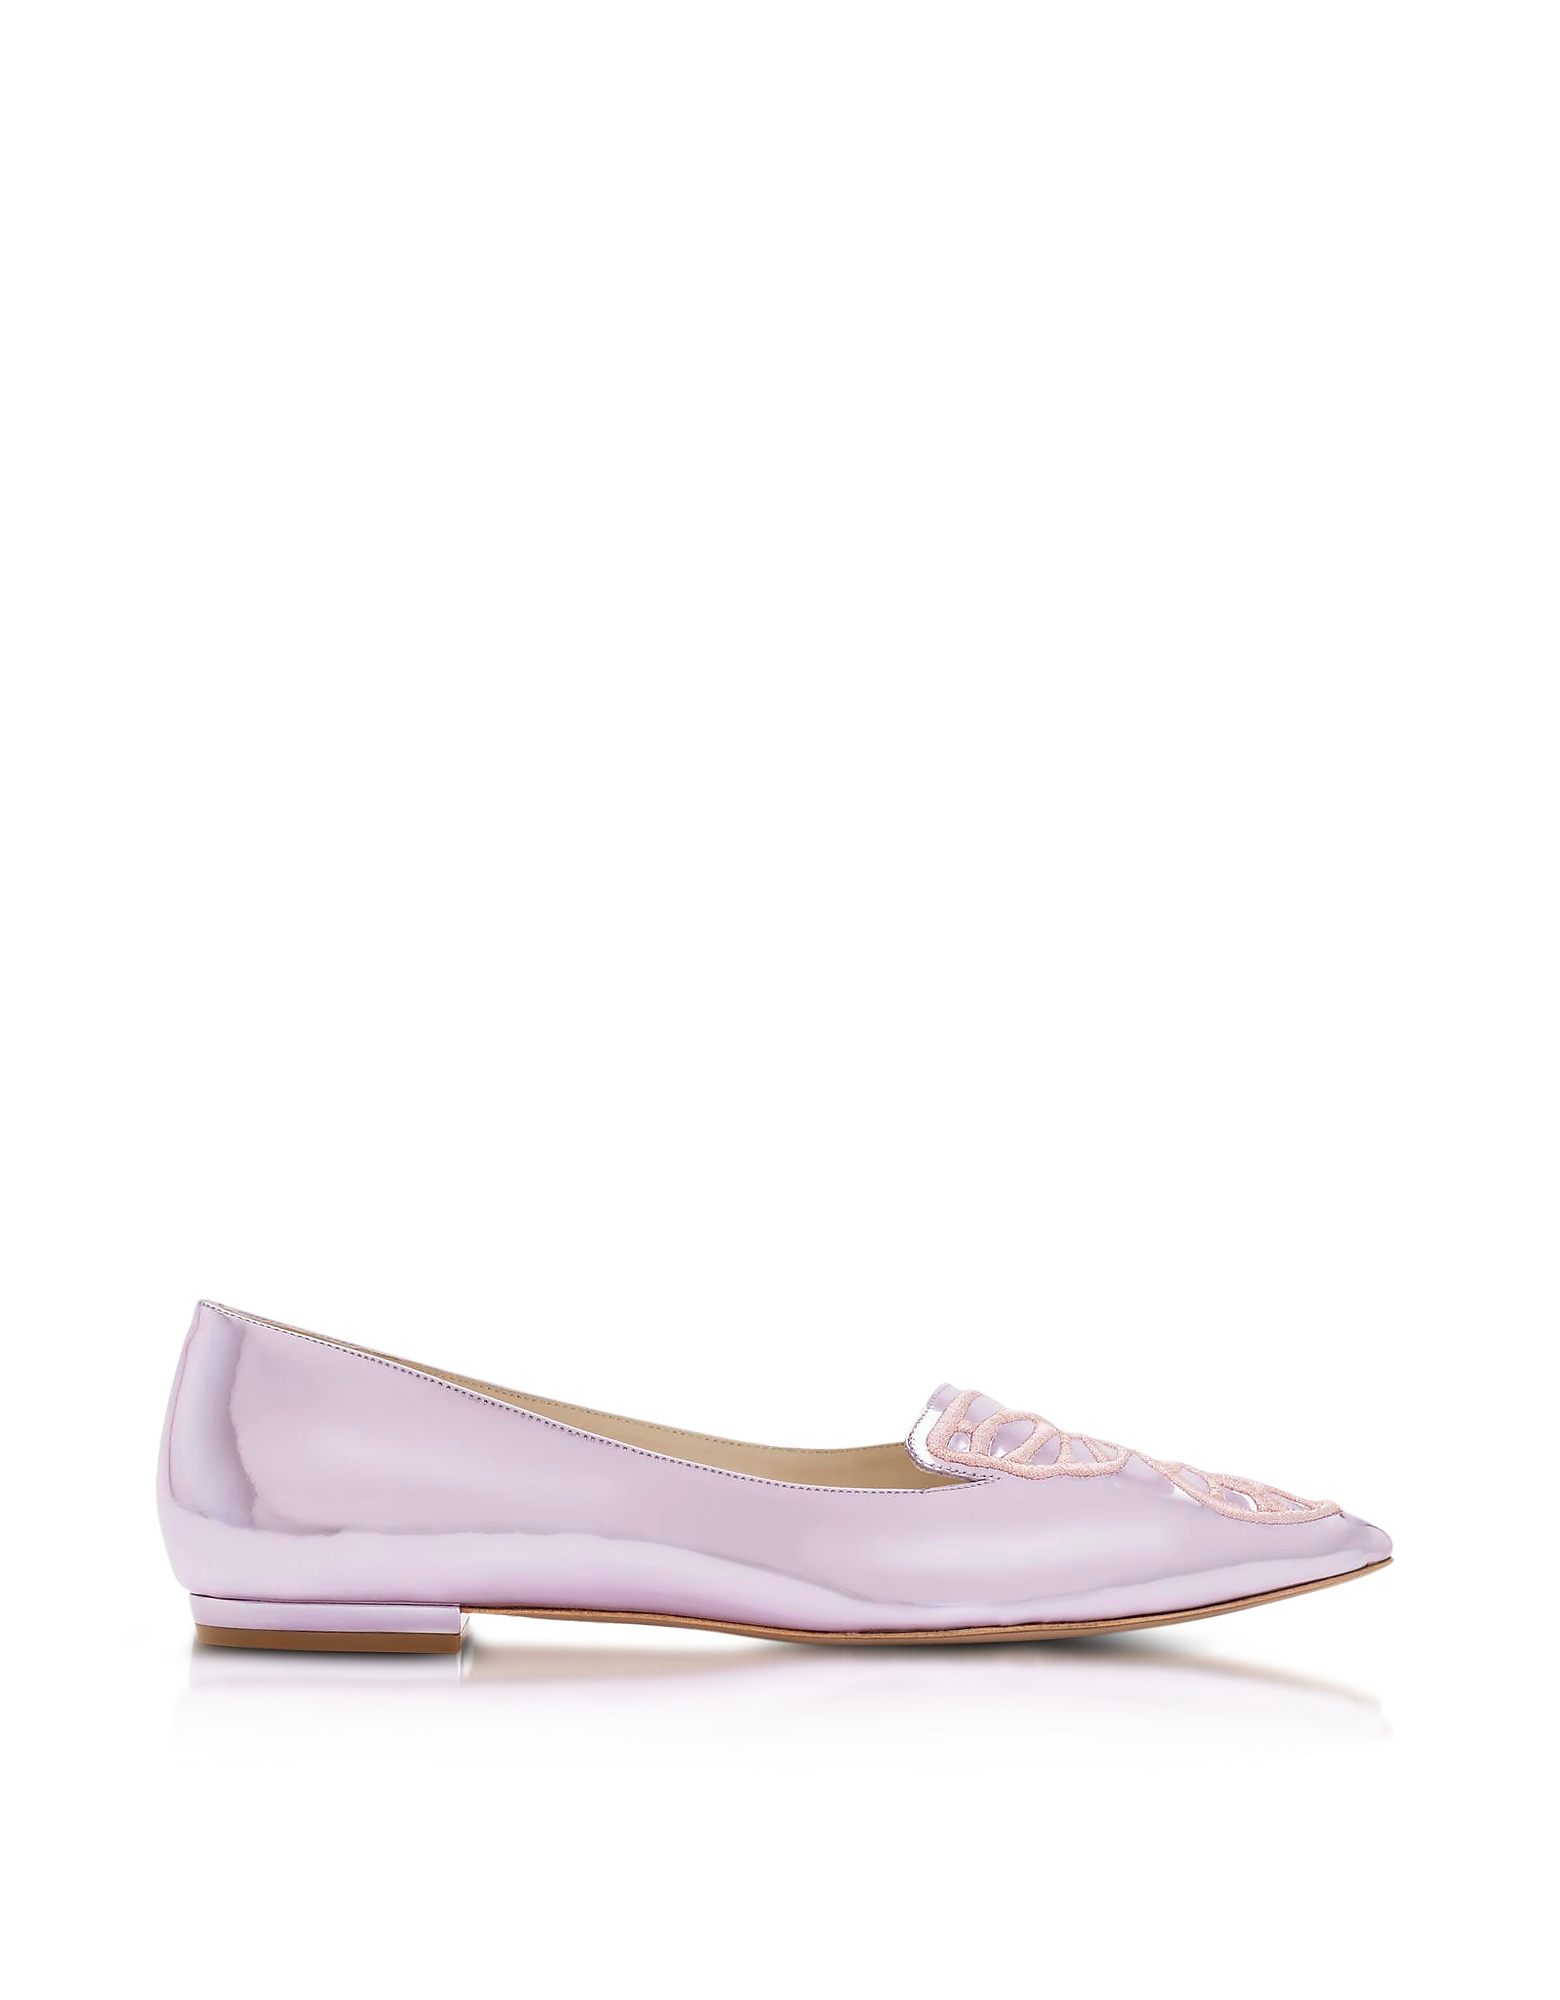 Sophia Webster Shoes, Metallic Pink Bibi Butterfly Flat Ballerina